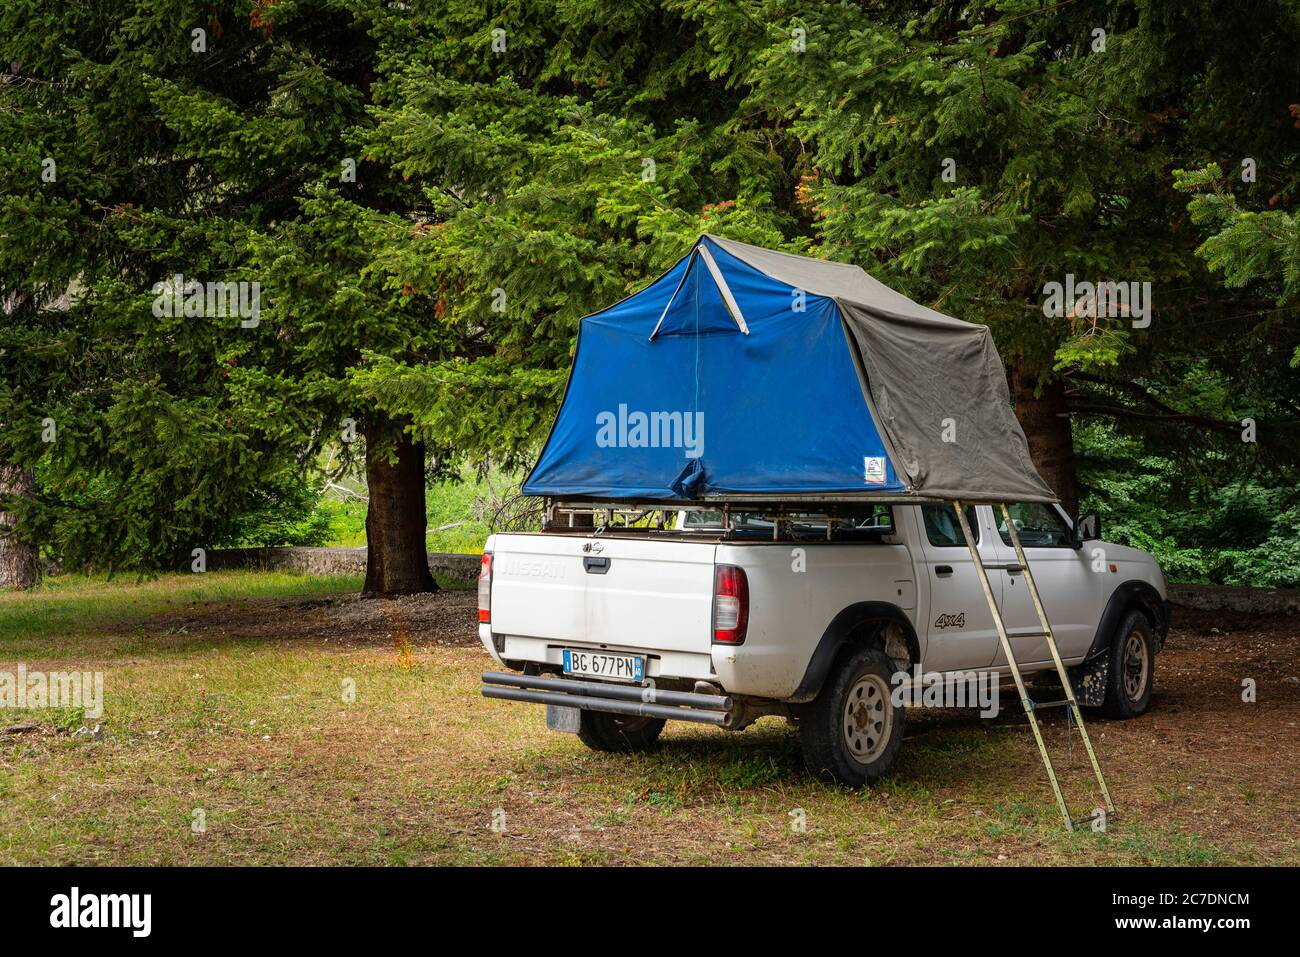 Car Camping Tent On The Rooftop Of An Nissan Suv In Mountains Stock Photo Alamy